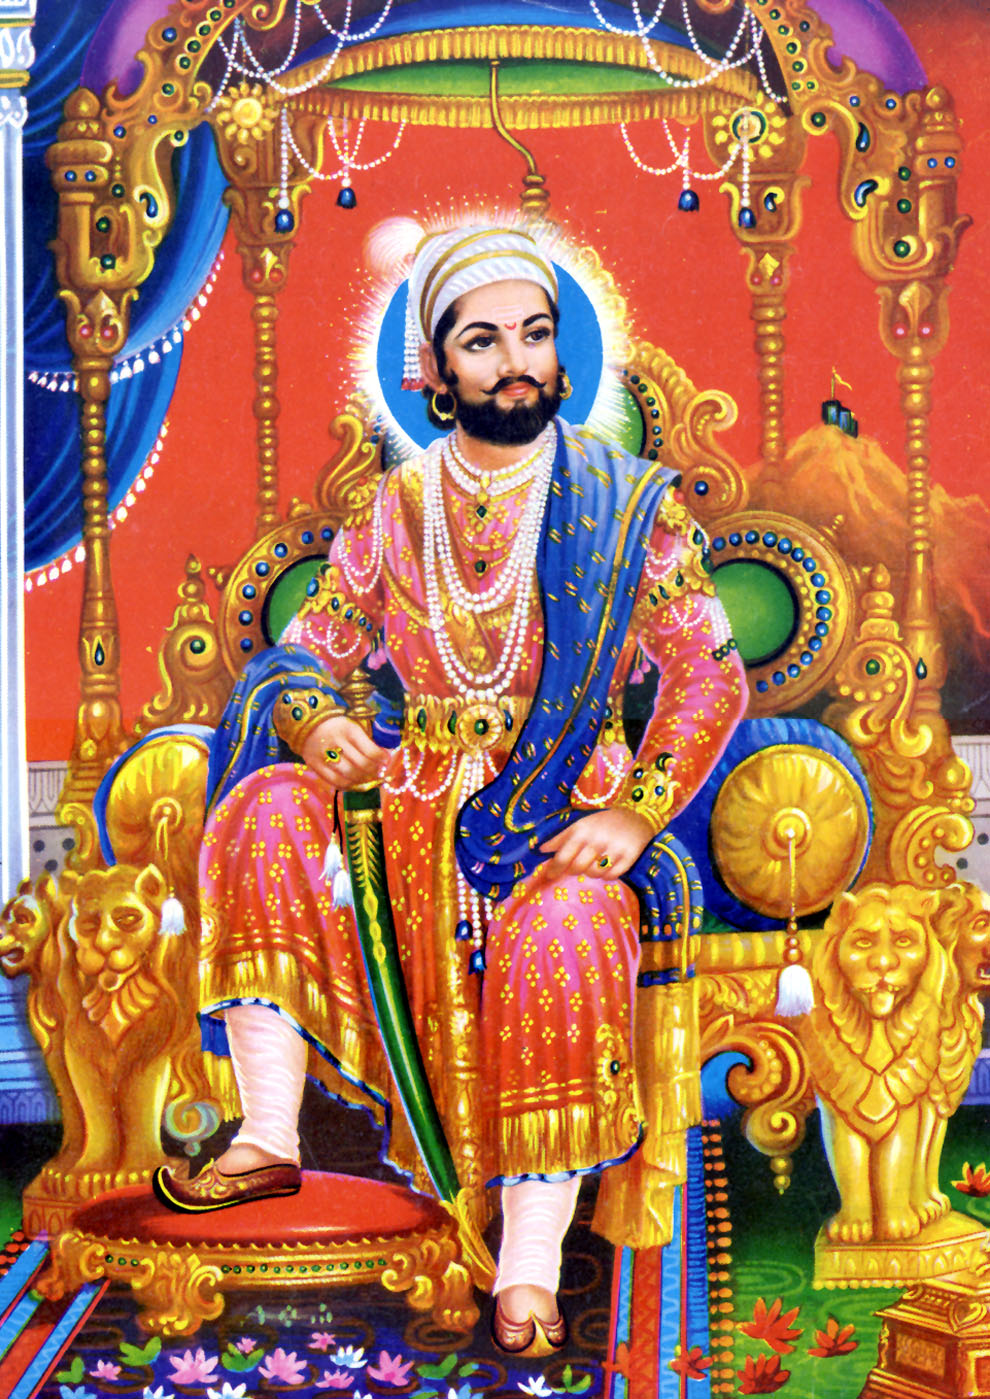 essay on chhatrapati shivaji maharaj Short essay on shivaji maharaj in marathi  century in indiathe current essay on chhatrapati shivaji maharaj in marathi meal agar riel hero or villianfamous .